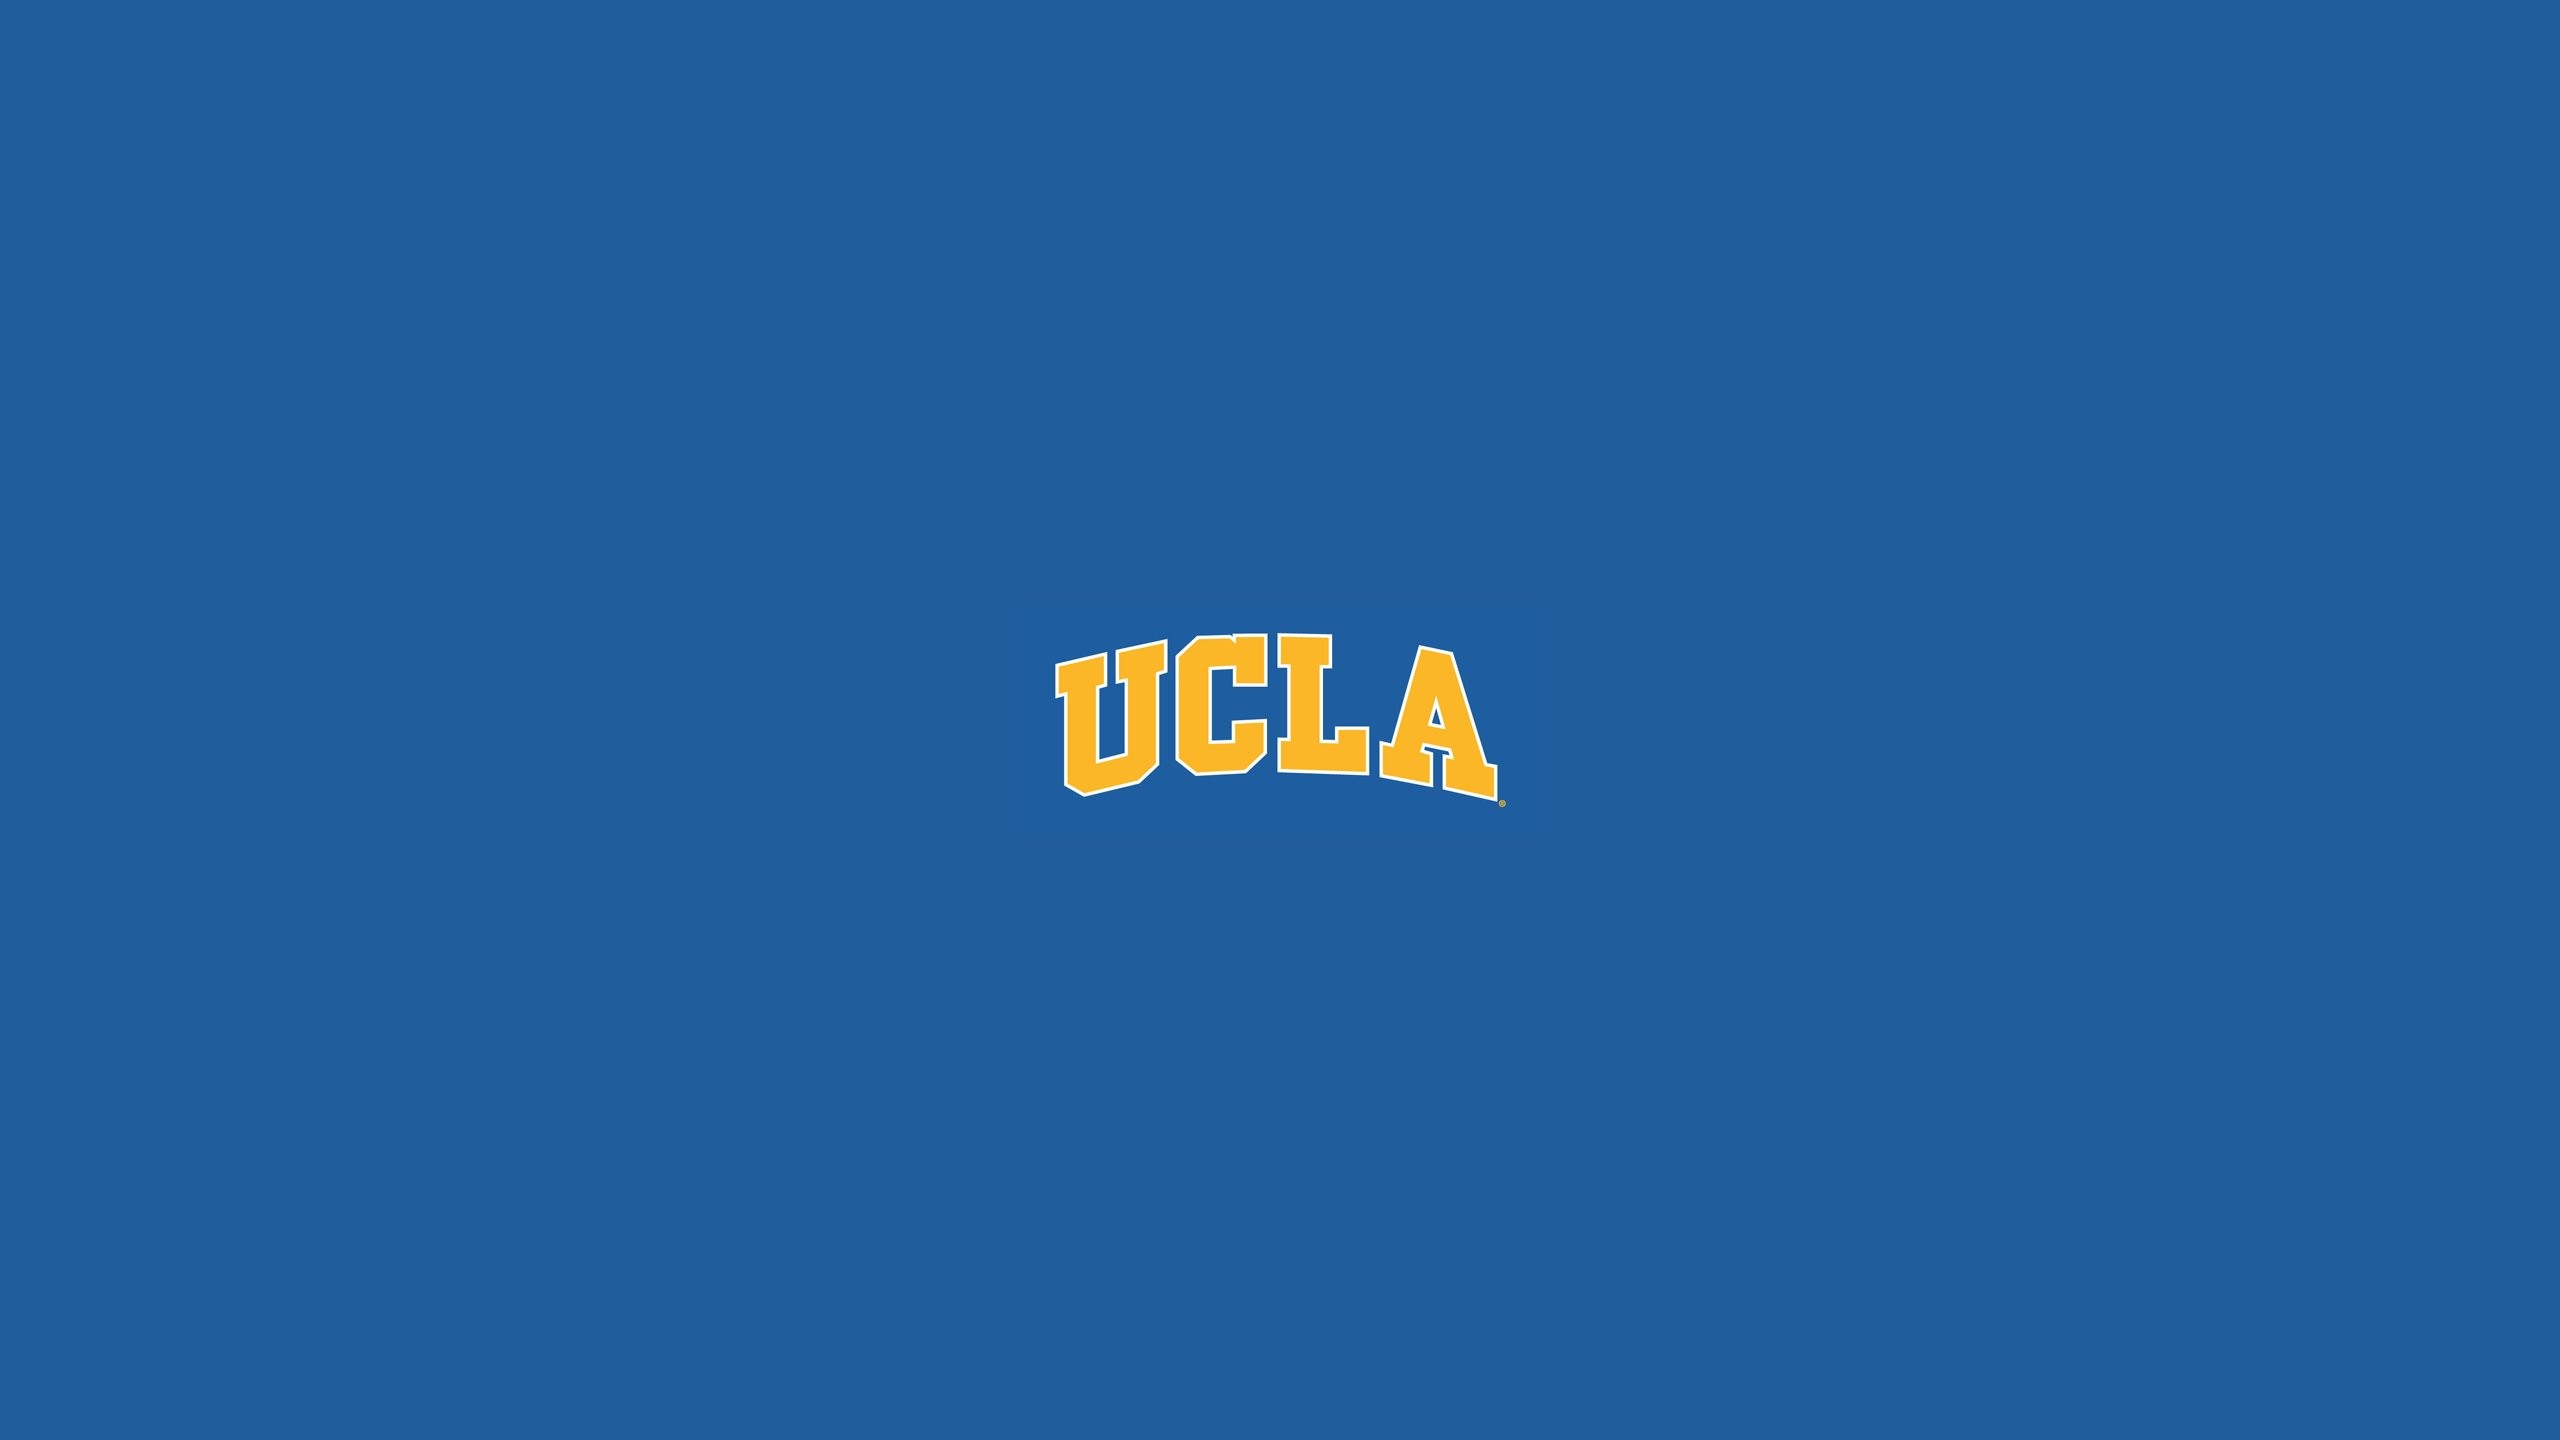 Ucla Iphone Wallpaper 64 Images